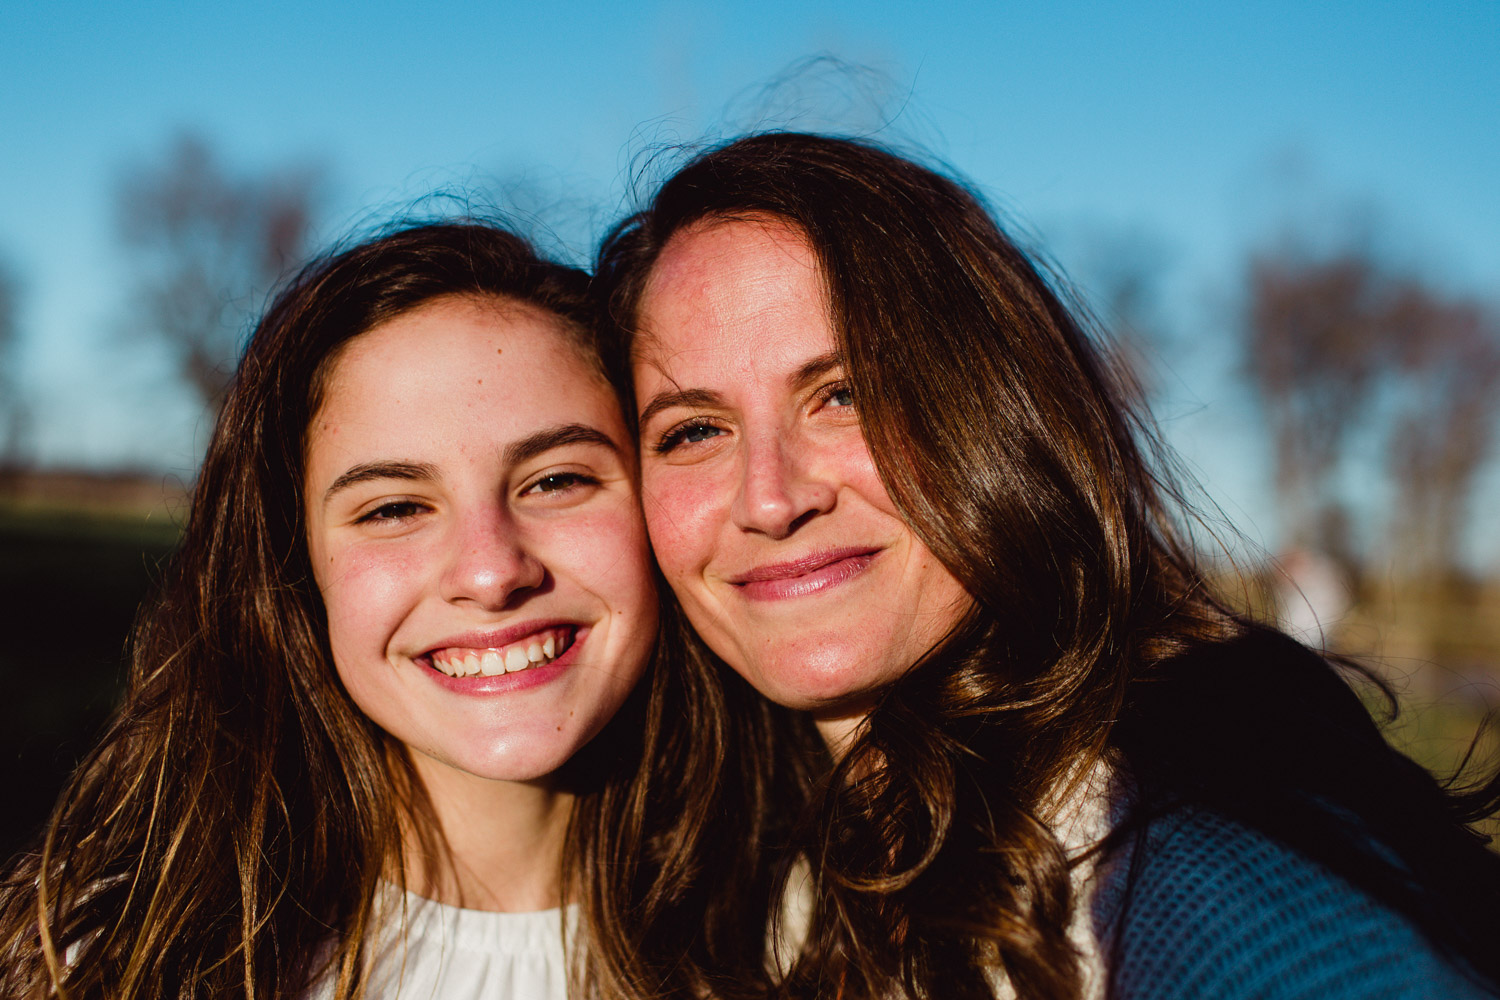 portrait of mother and daughter together